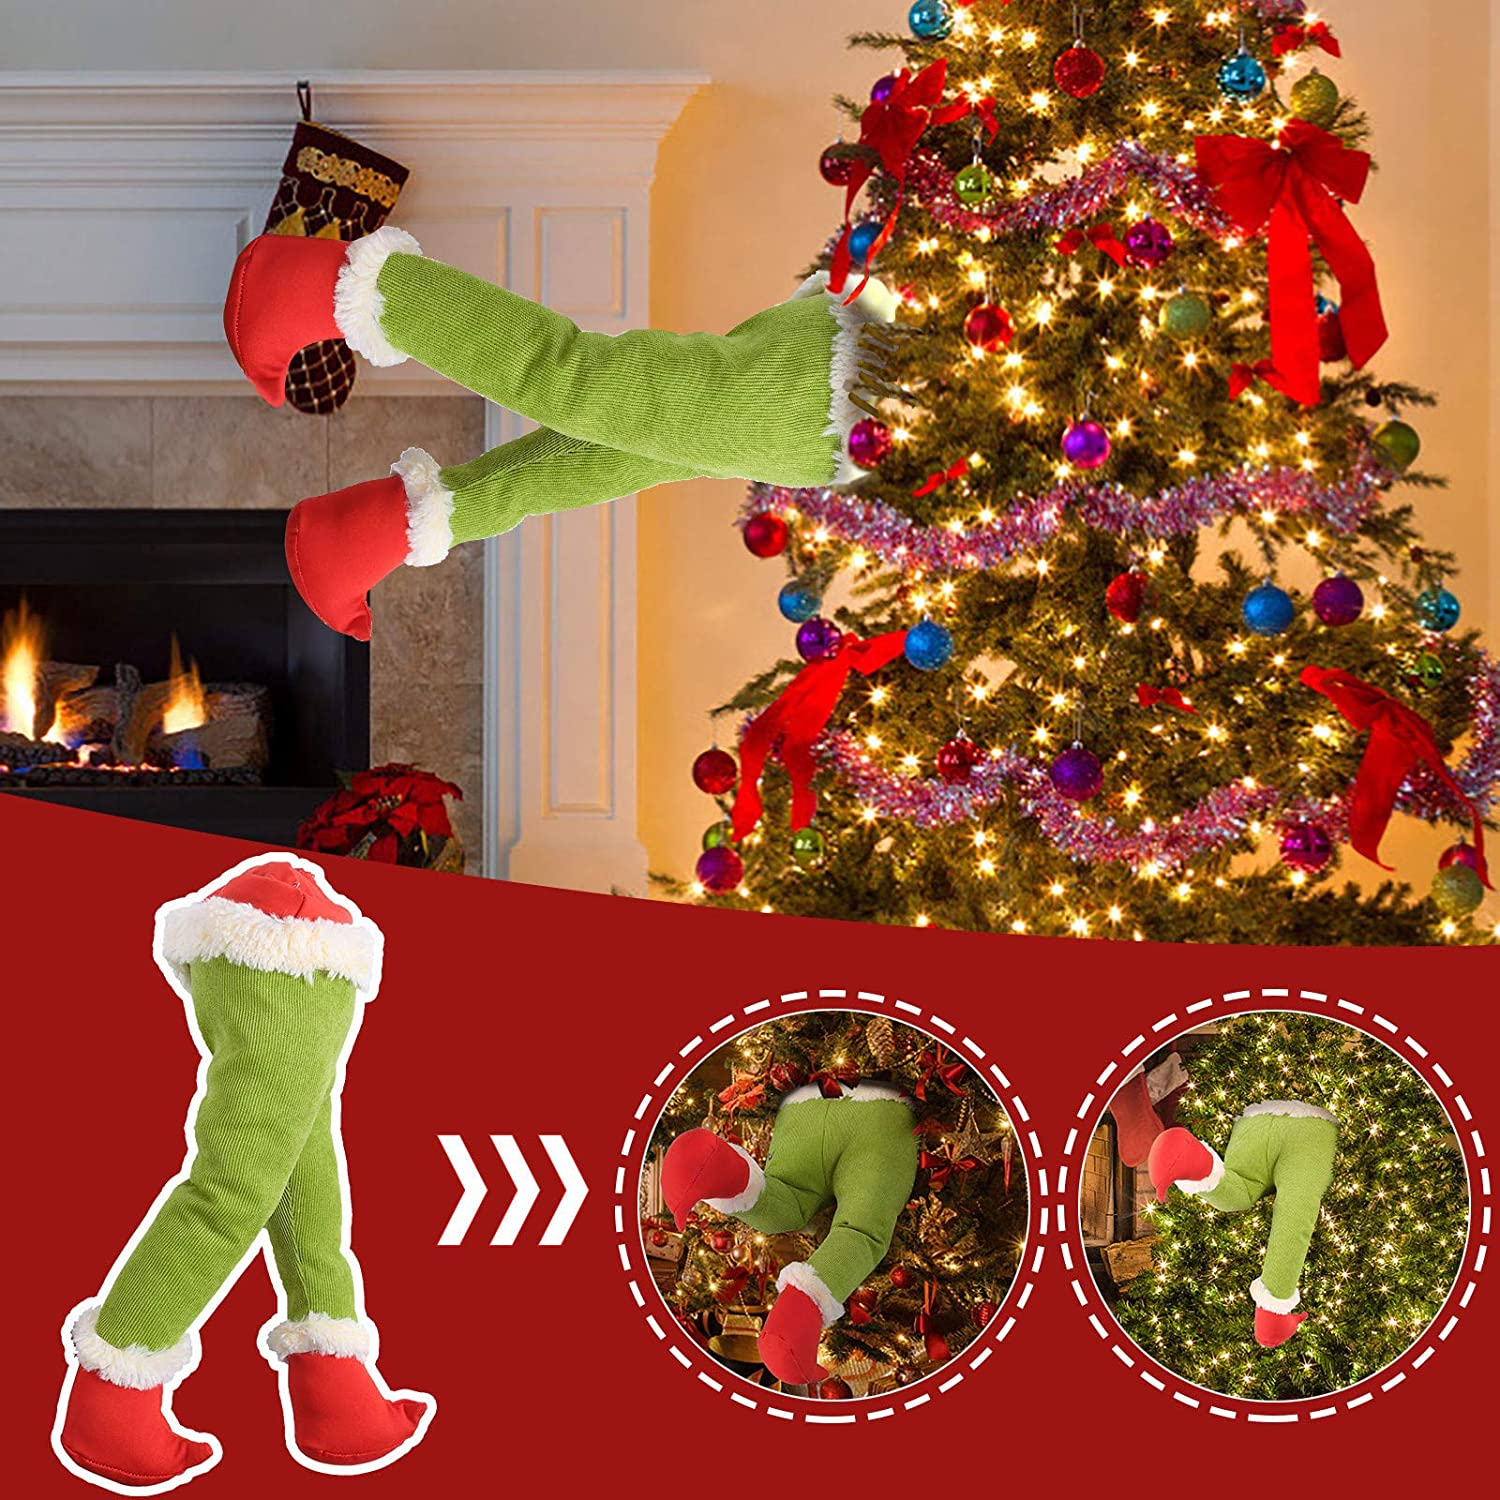 UTPO Christmas Decorations, Christmas Tree Ornament How The Grinch Stole Christmas Stuffed Elf Legs Stuck in Christmas Burlap Wreath for Fireplace Car Door Party Home Decor